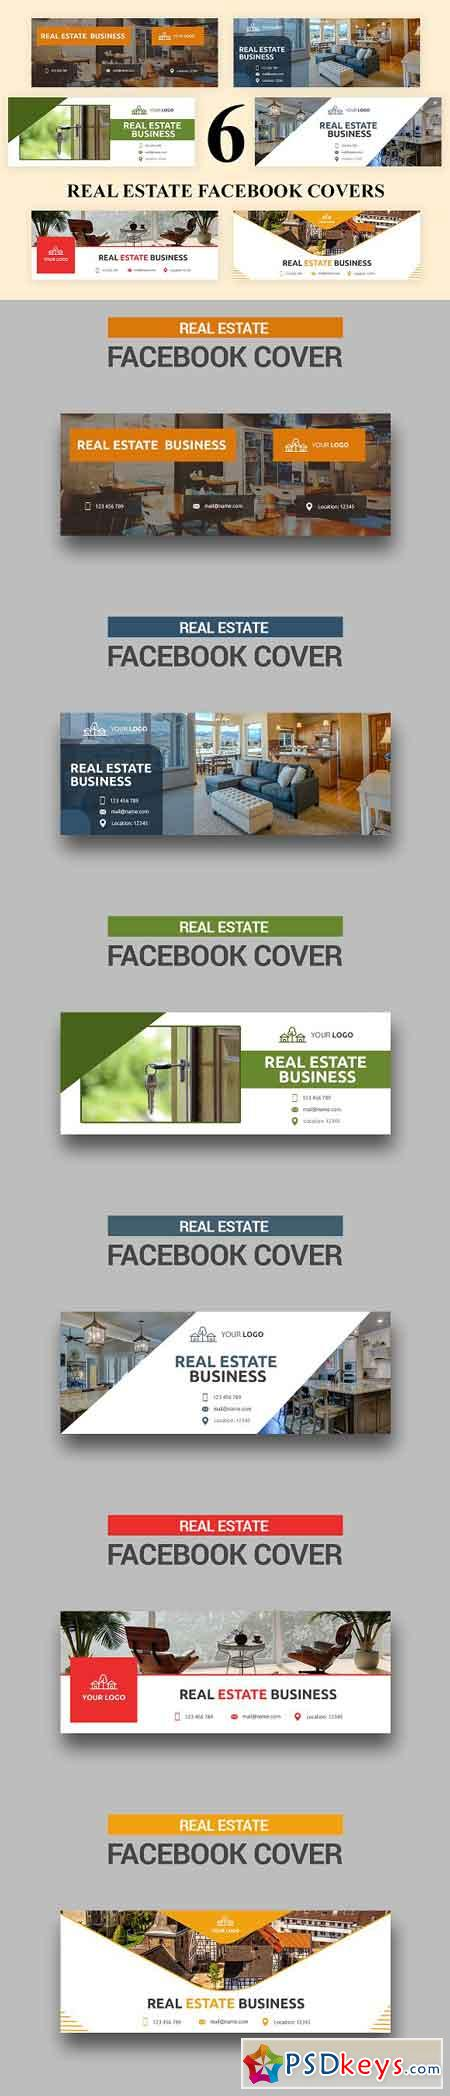 Real Estate Facebook Covers - SK 3035501